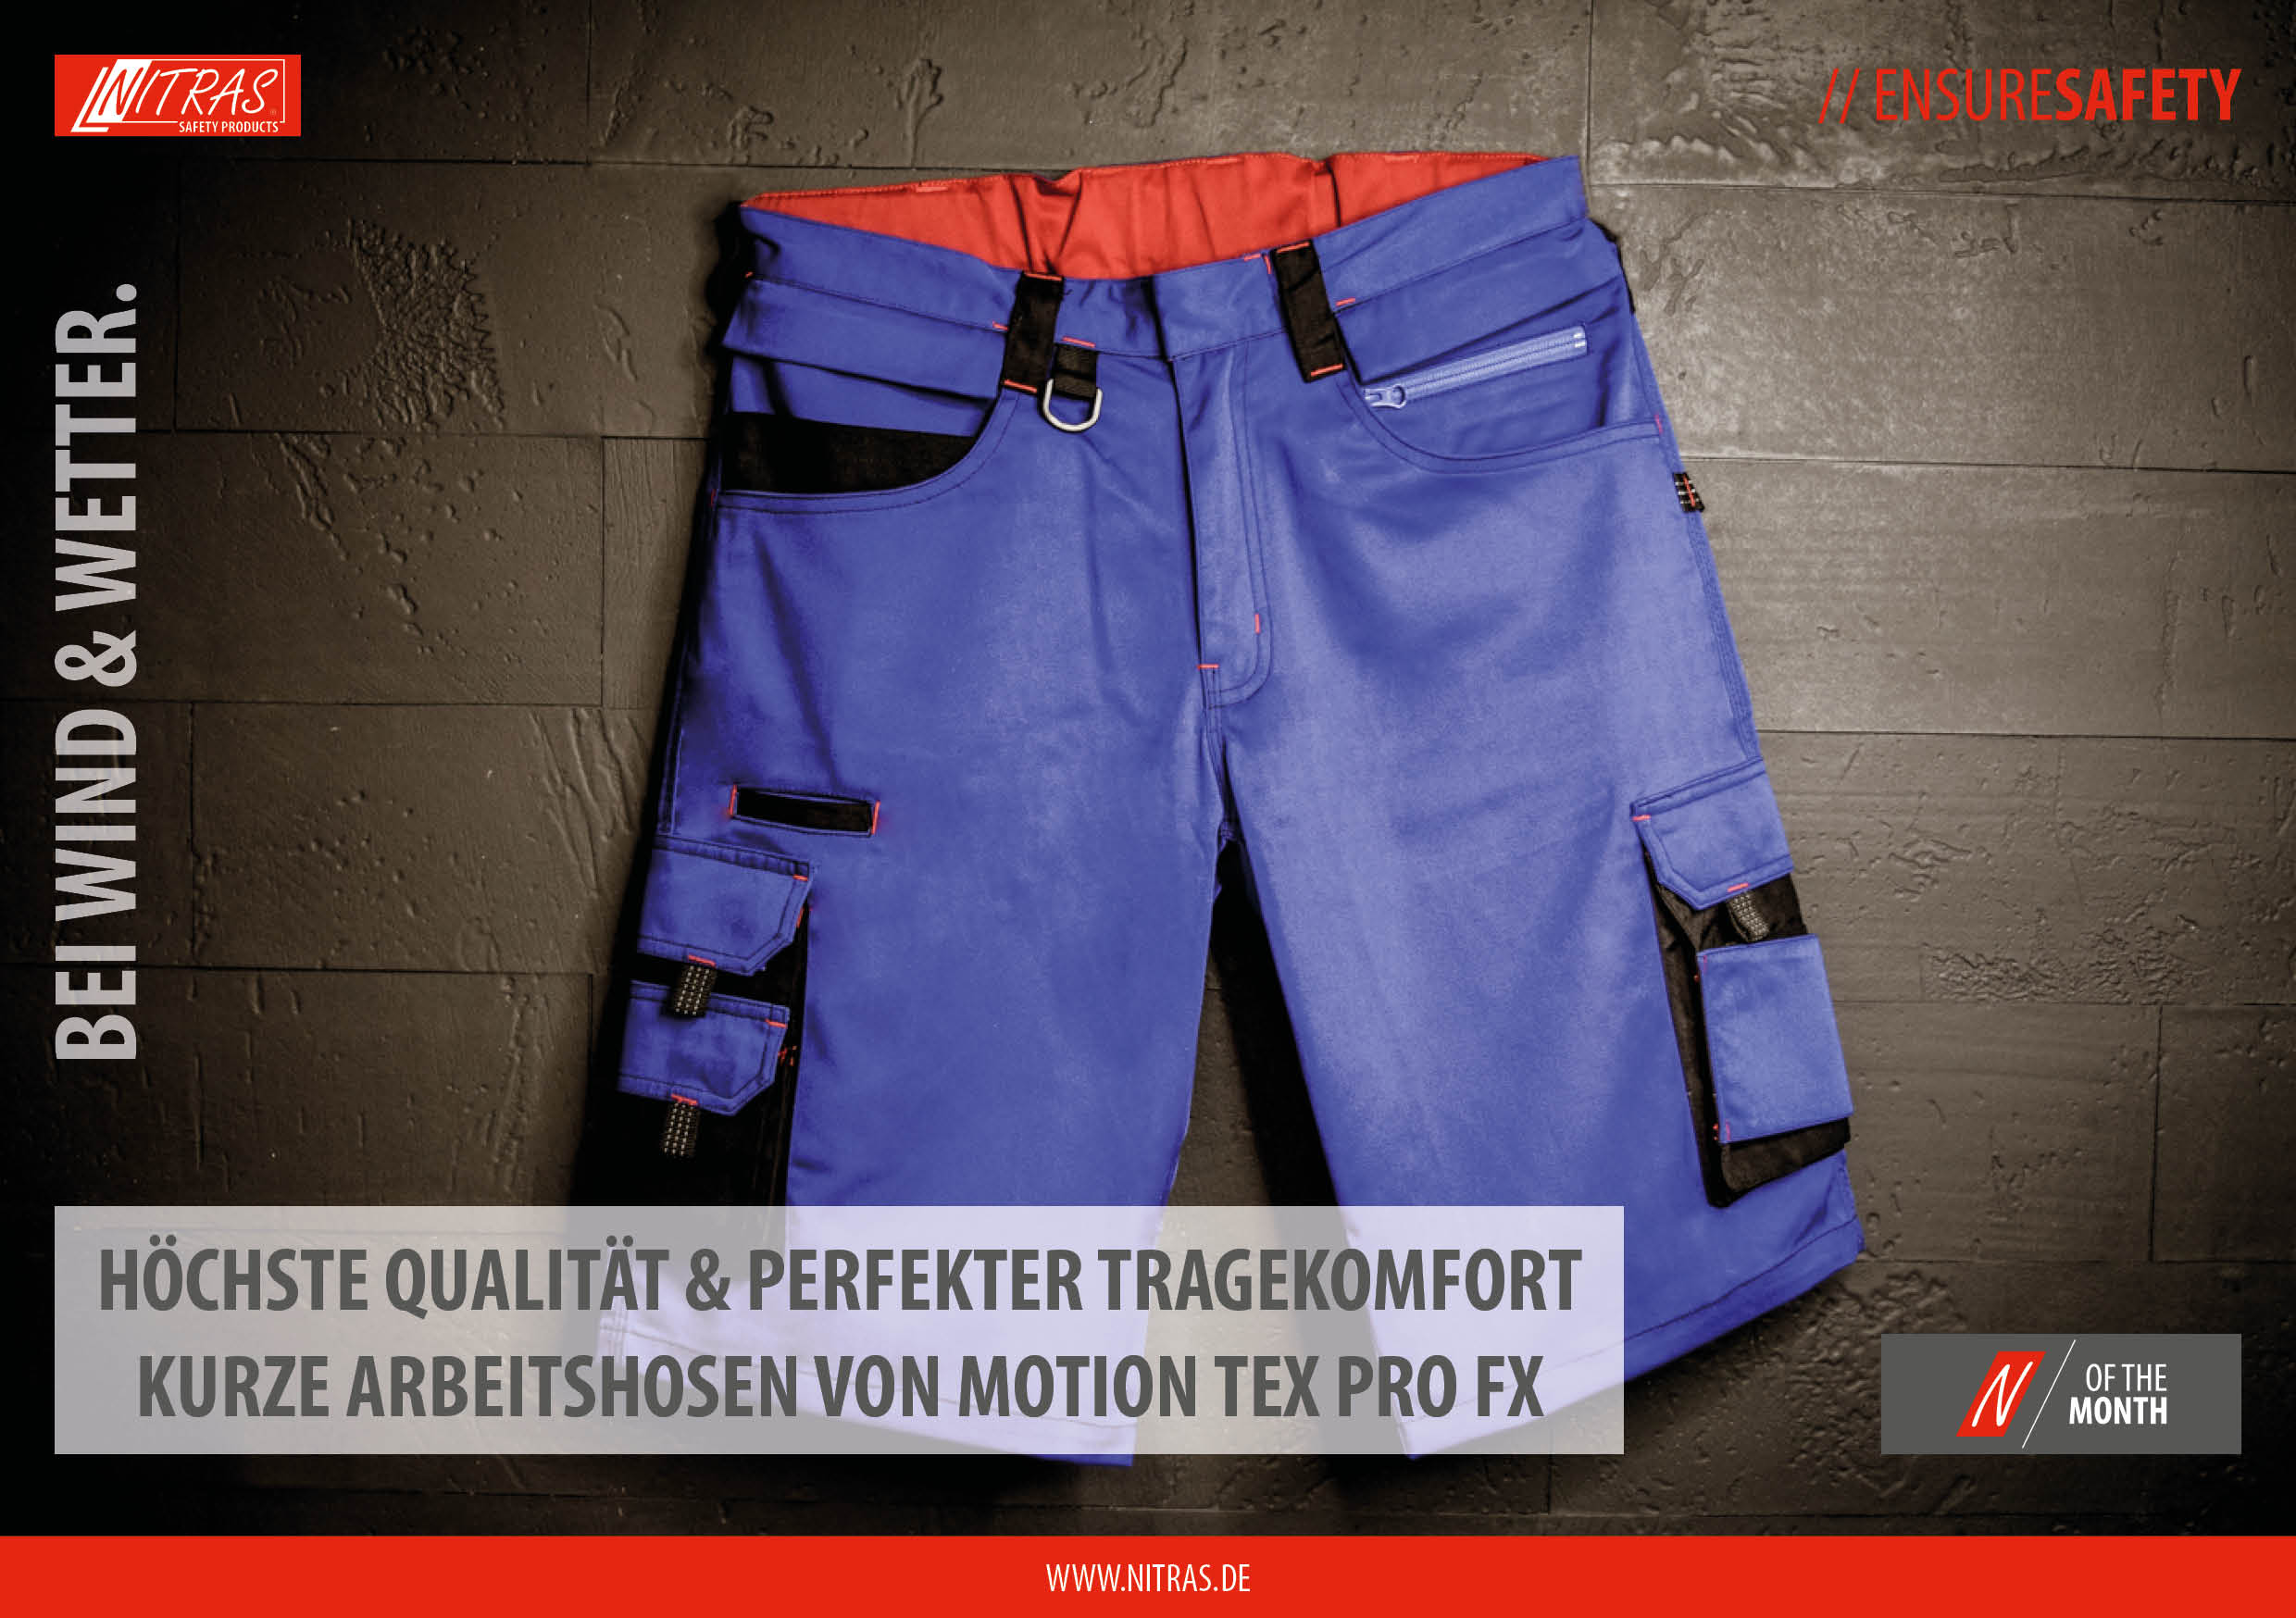 """Our """"N"""" of the month July: MOTION TEX PRO FX short work trousers - highest quality & perfect wearing comfort"""